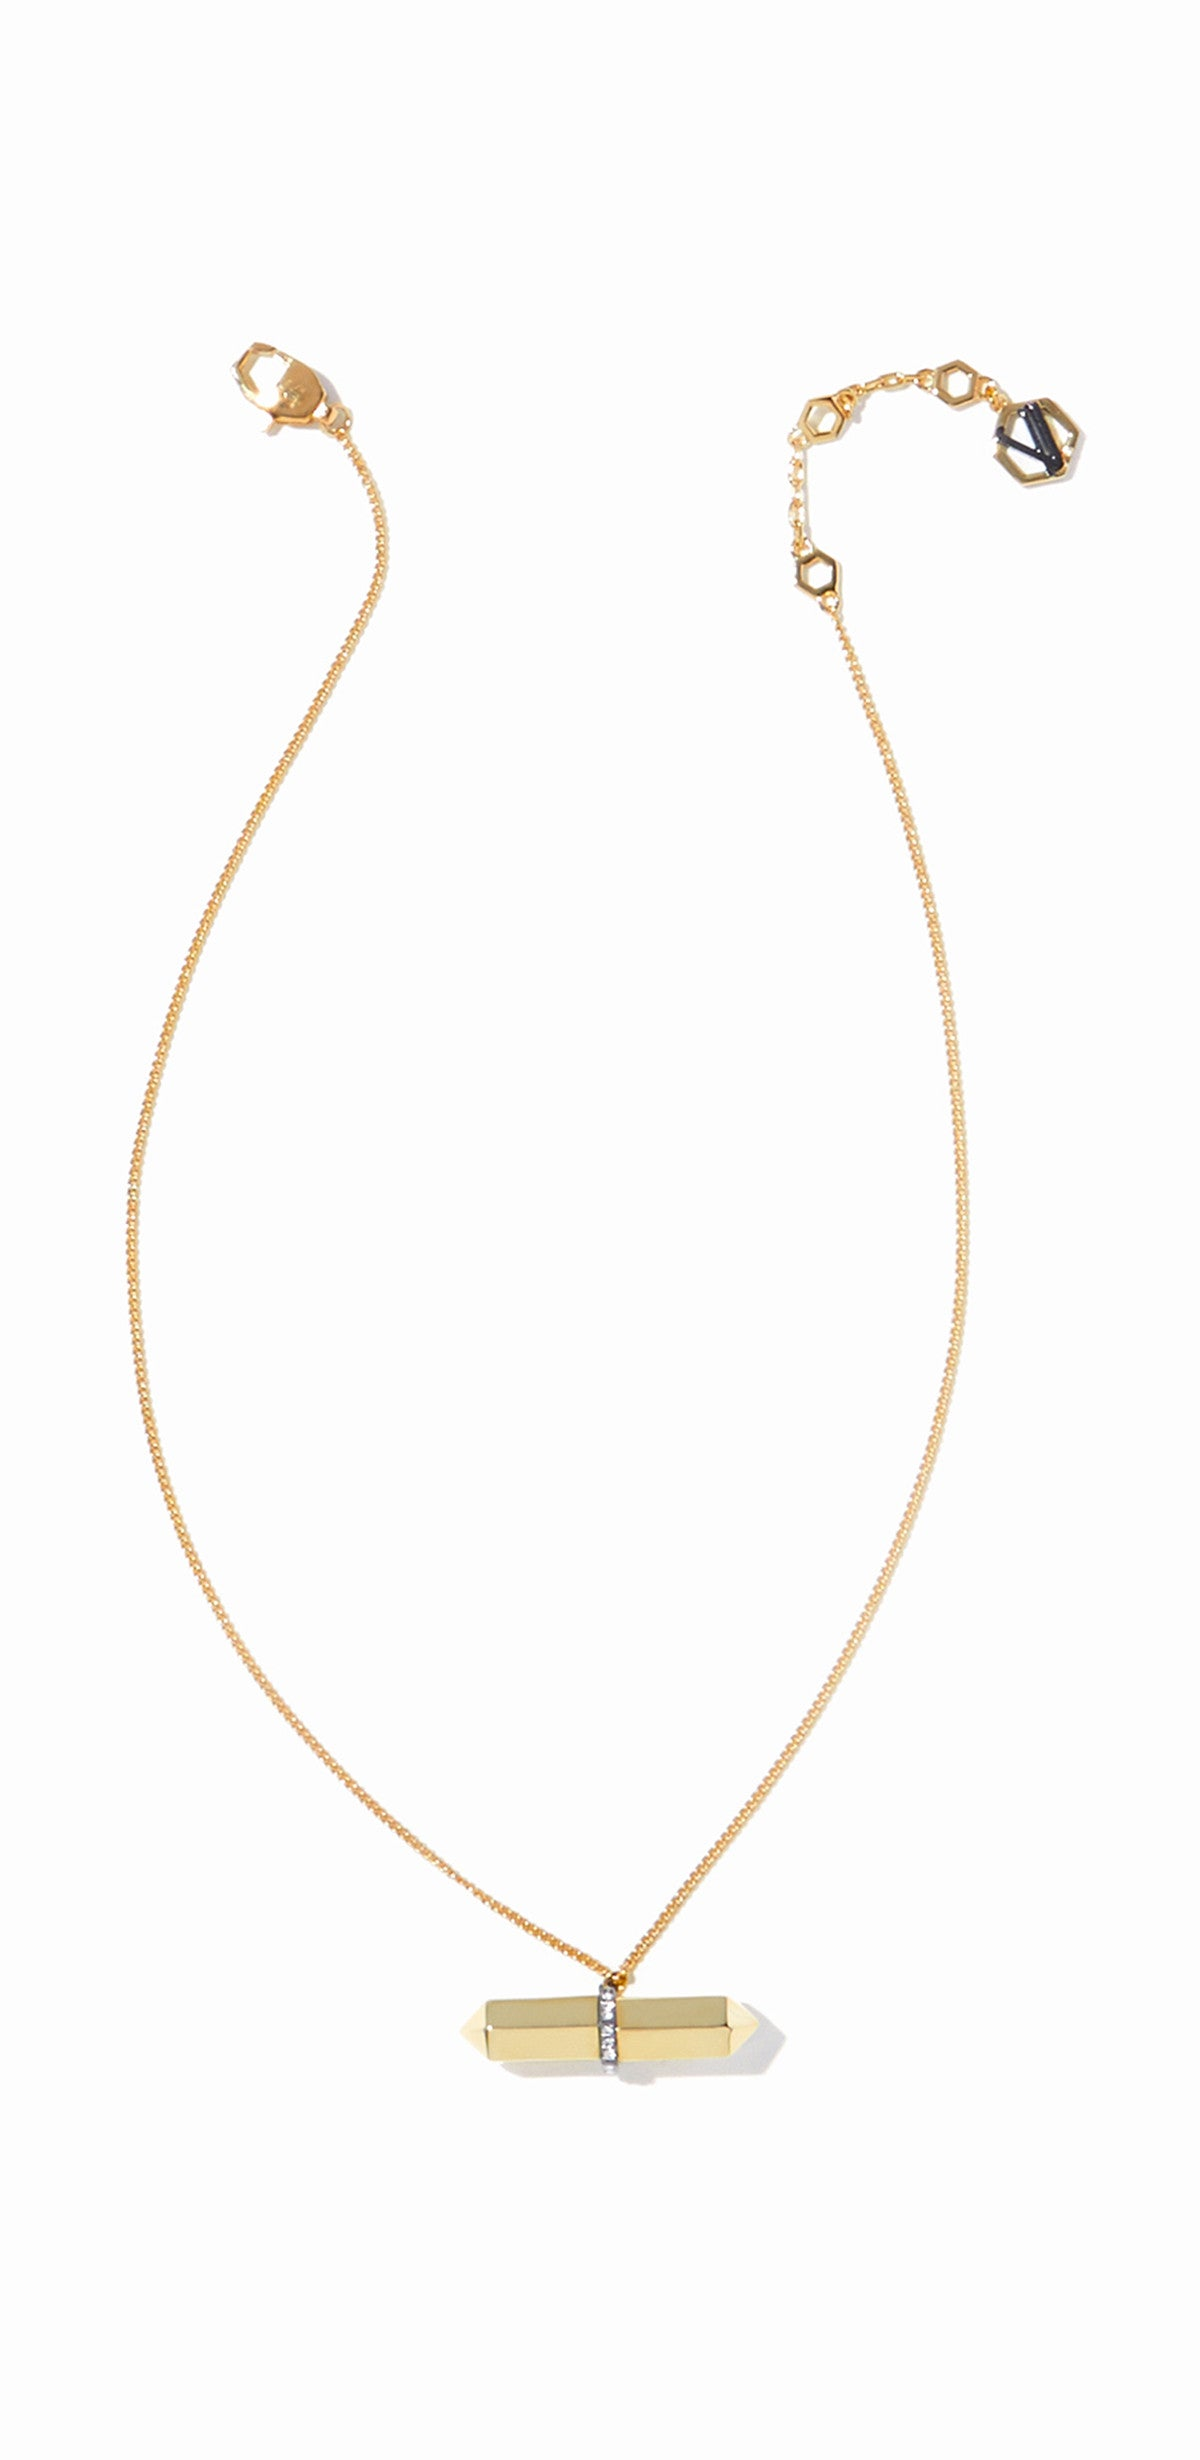 Colette Pendant - 2 Tone Gold and Hematite